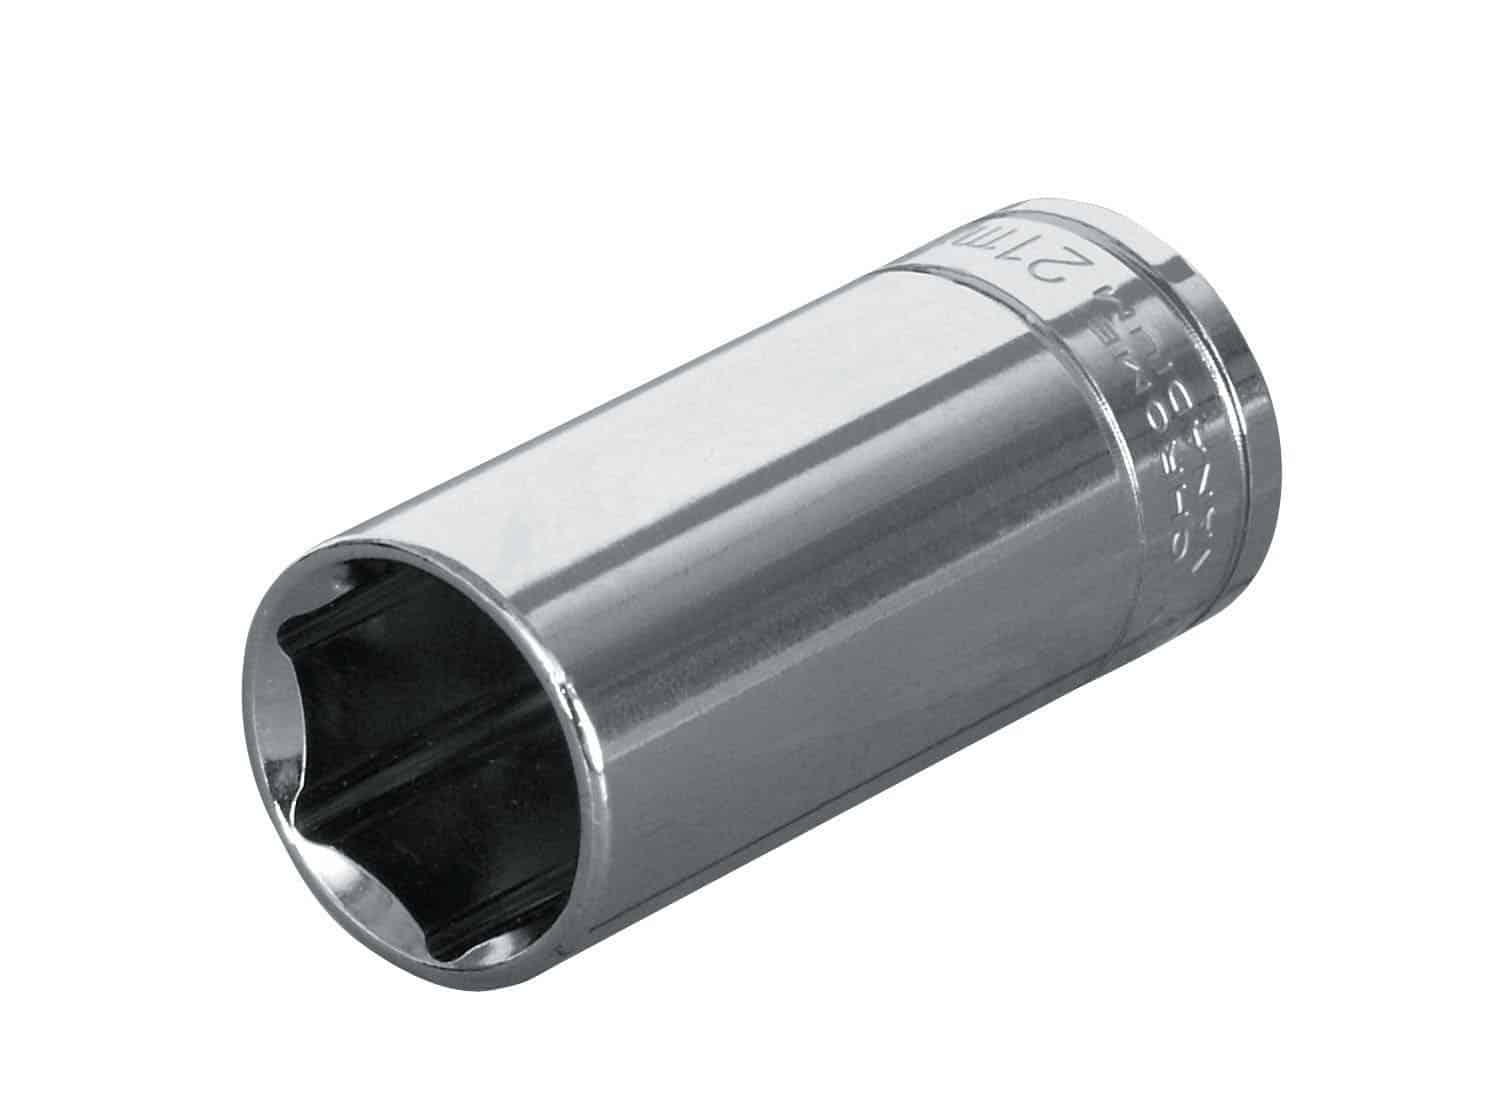 "EXPERT E113763 - 1/4"" Square Drive Inch Long 12Pt Socket 1/4in"